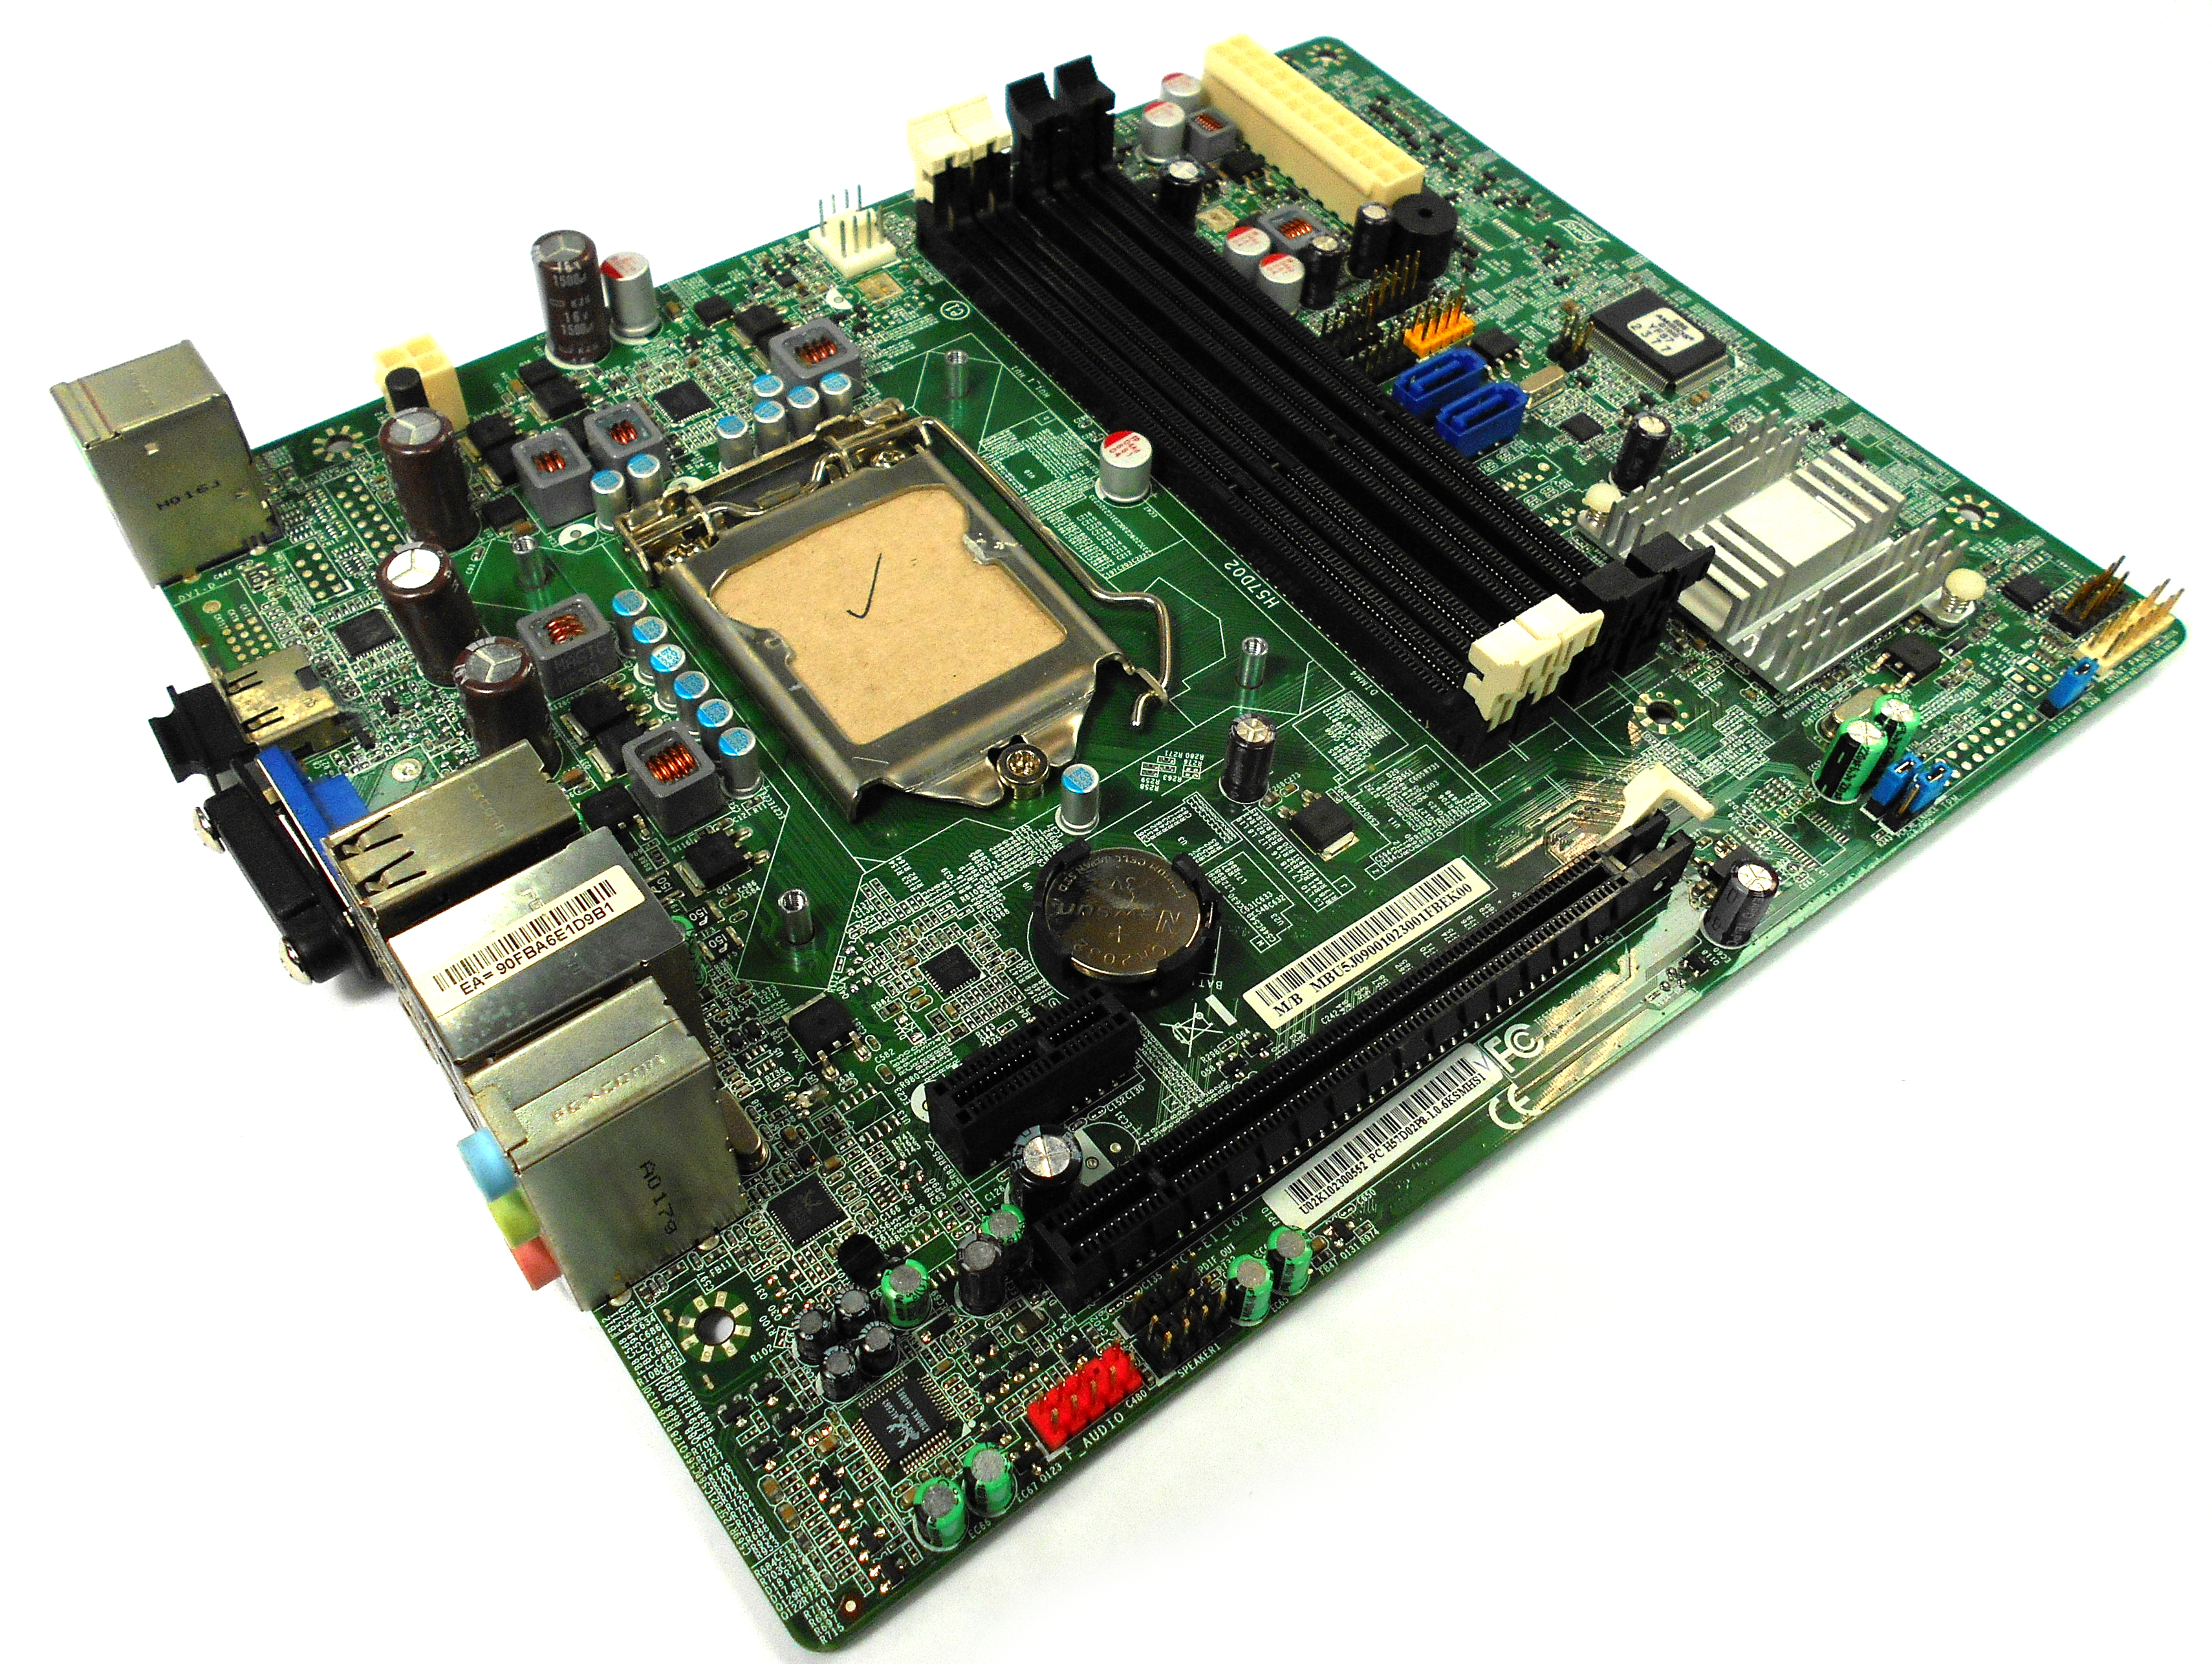 MB.U5J09.001 Packard Bell oneTwo L5851AiO PC Socket 1156 Motherboard - H57D02